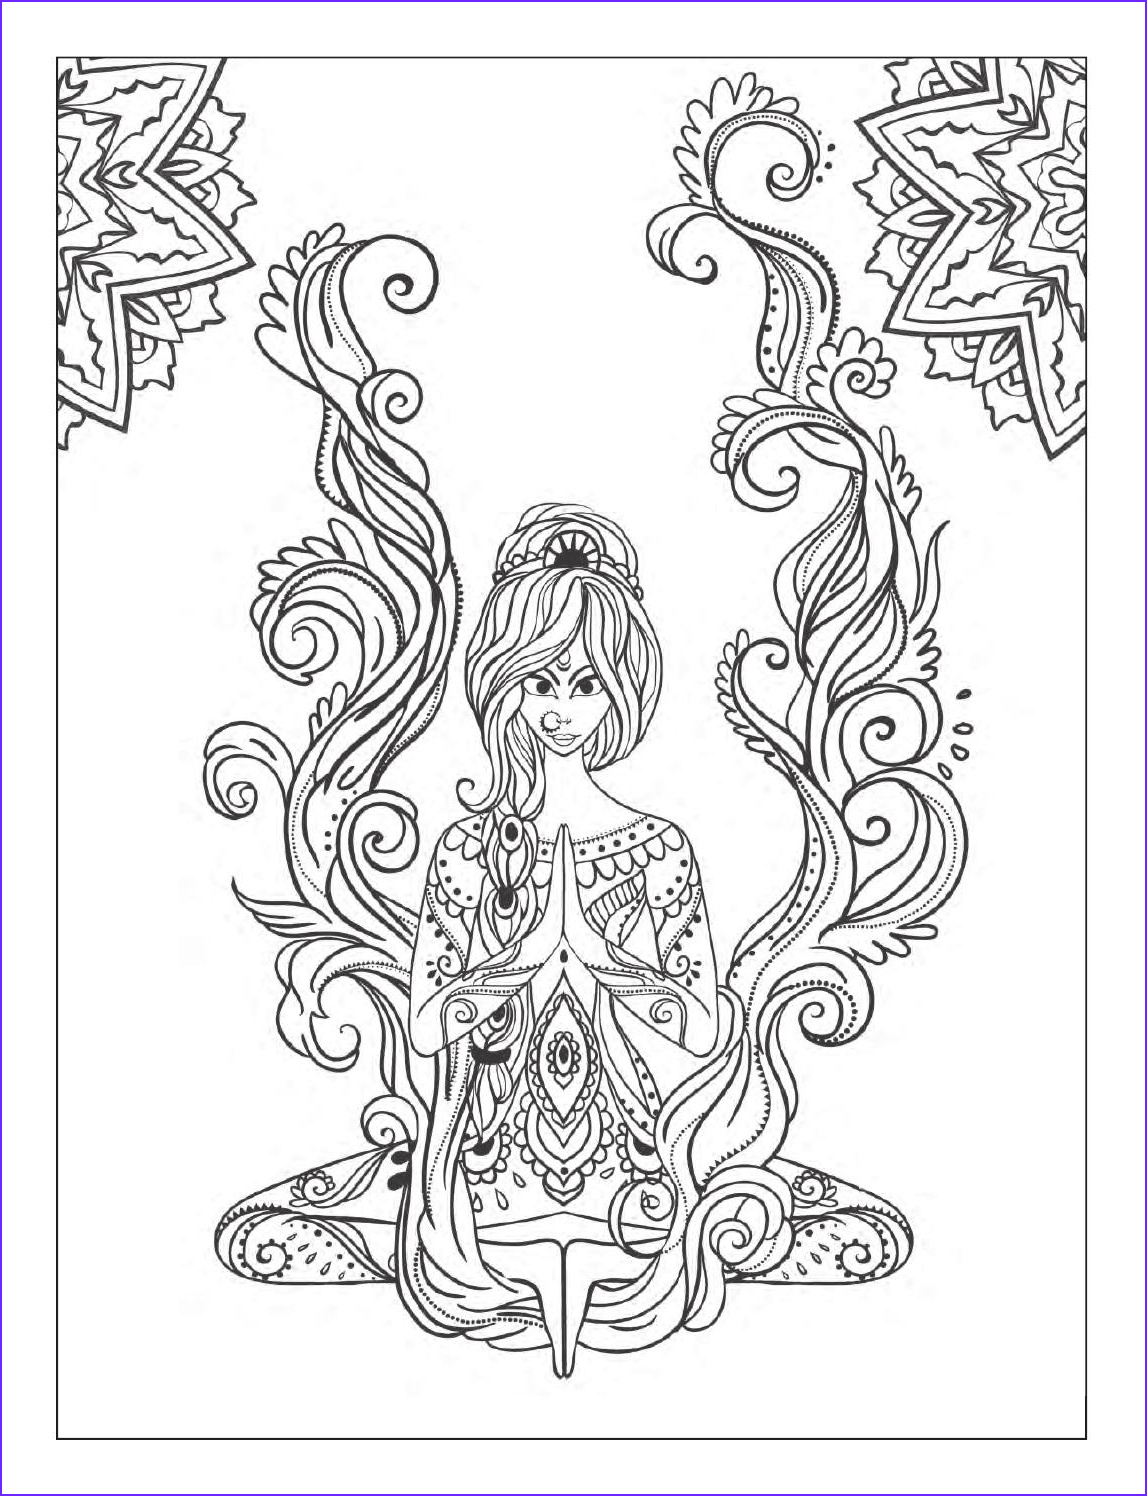 Adults Coloring Book Images Beautiful Photos Yoga and Meditation Coloring Book for Adults with Yoga